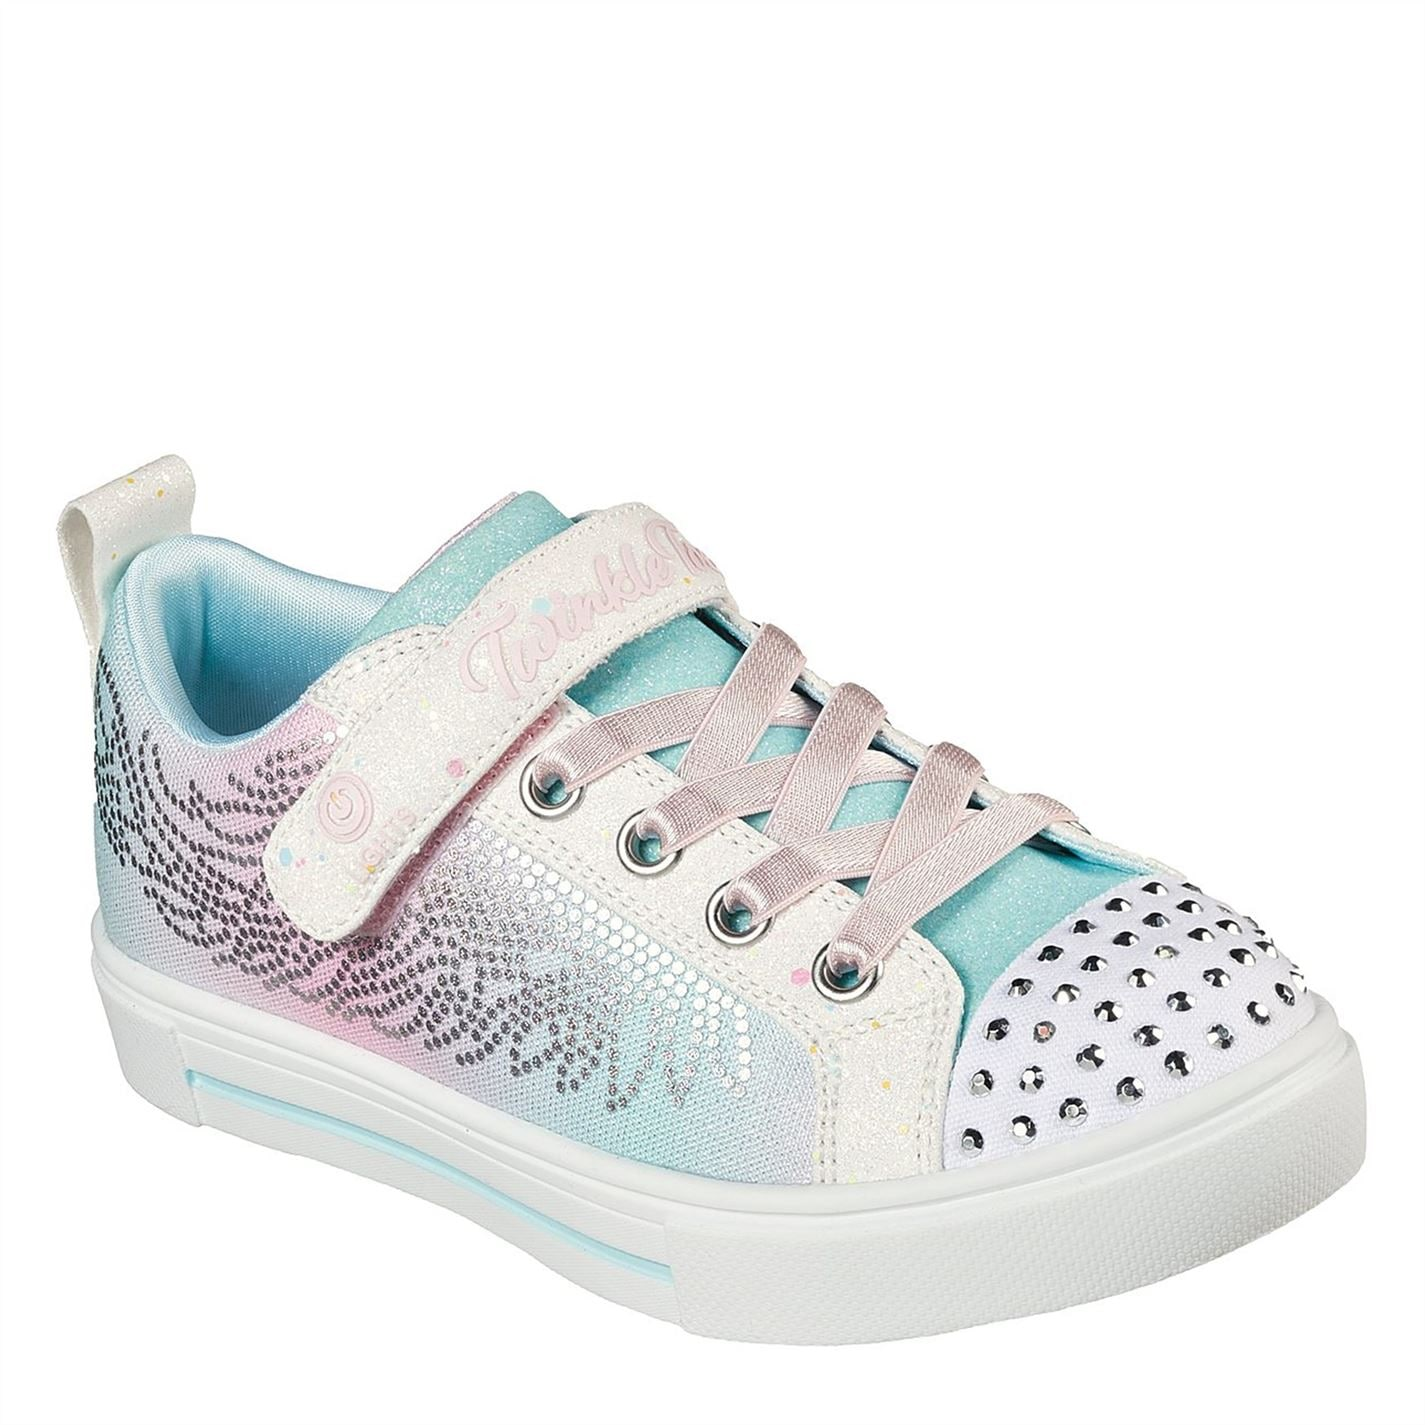 Skechers Twinkle Toes Trainers Infant Girls White/Multi